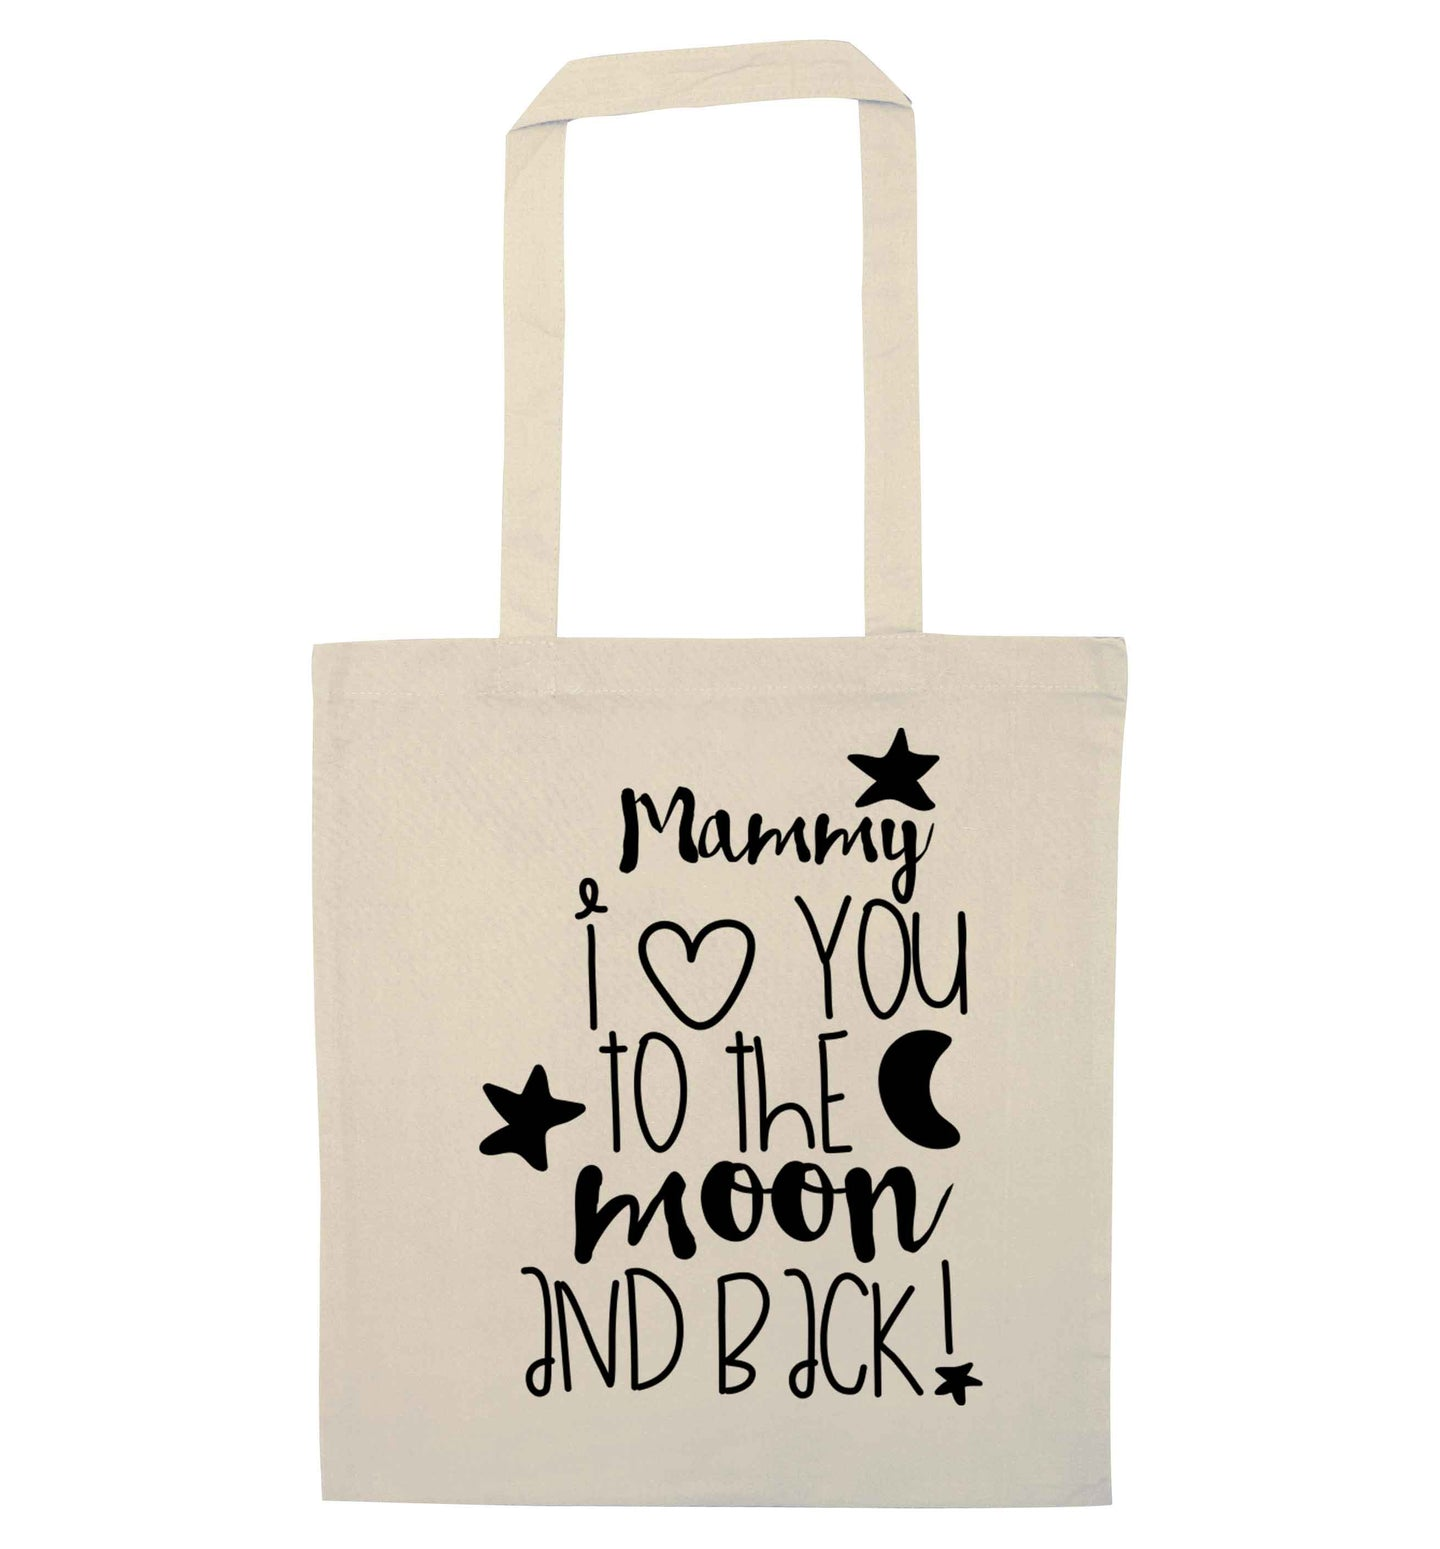 Mammy I love you to the moon and back natural tote bag